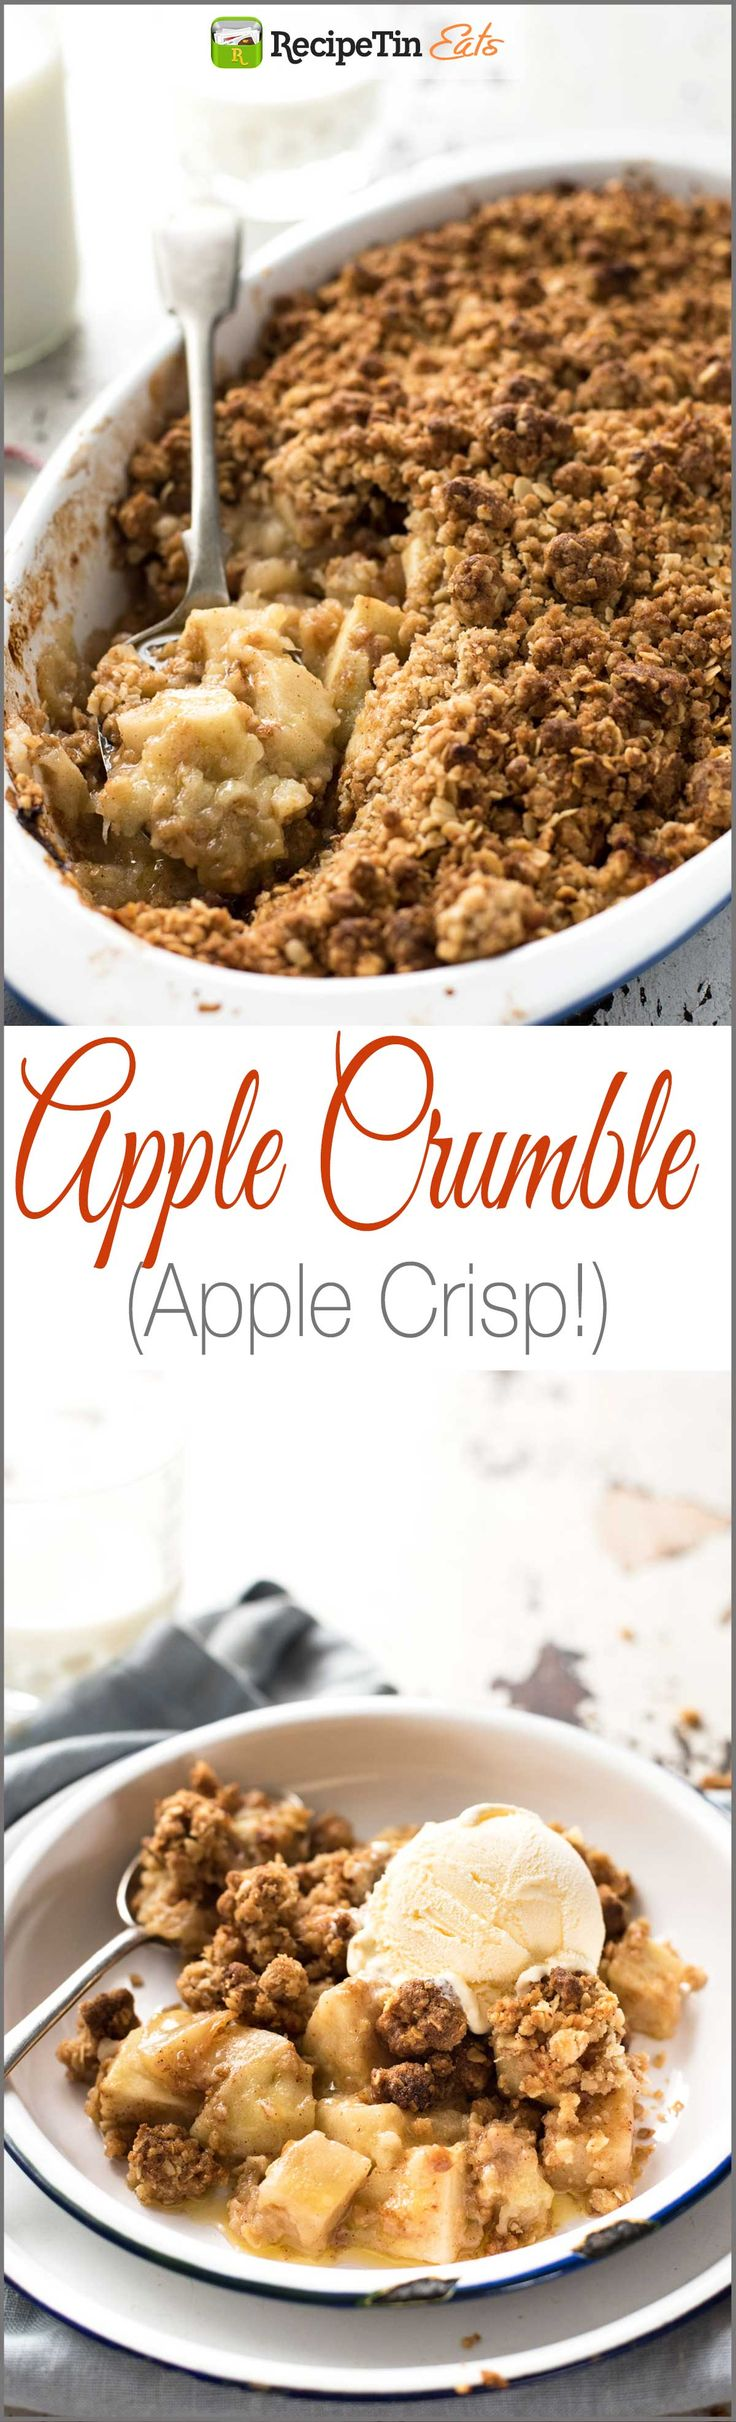 Apple Crumble (Apple Crisp) - Juicy apple filing with a gorgeous CRUNCHY crumbly topping. So easy to make!